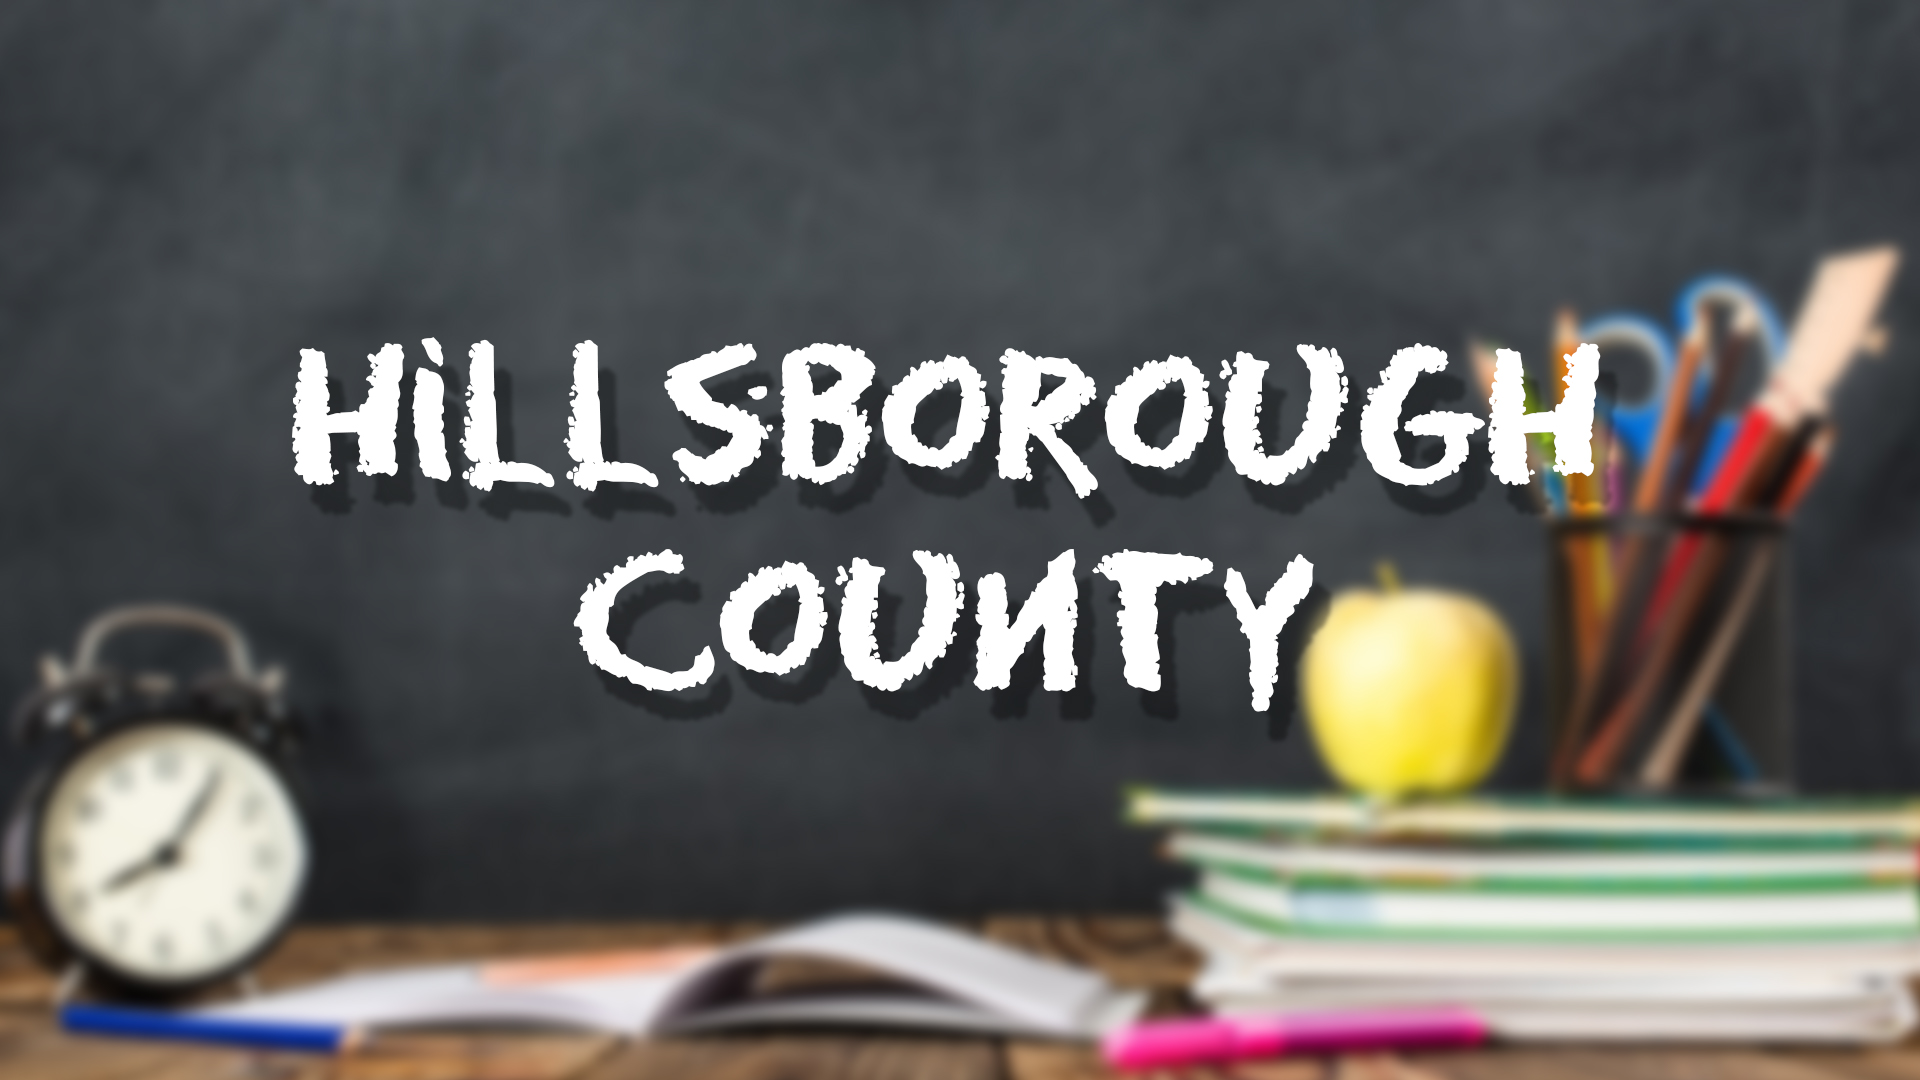 2019 2020 bell schedules for Hillsborough County